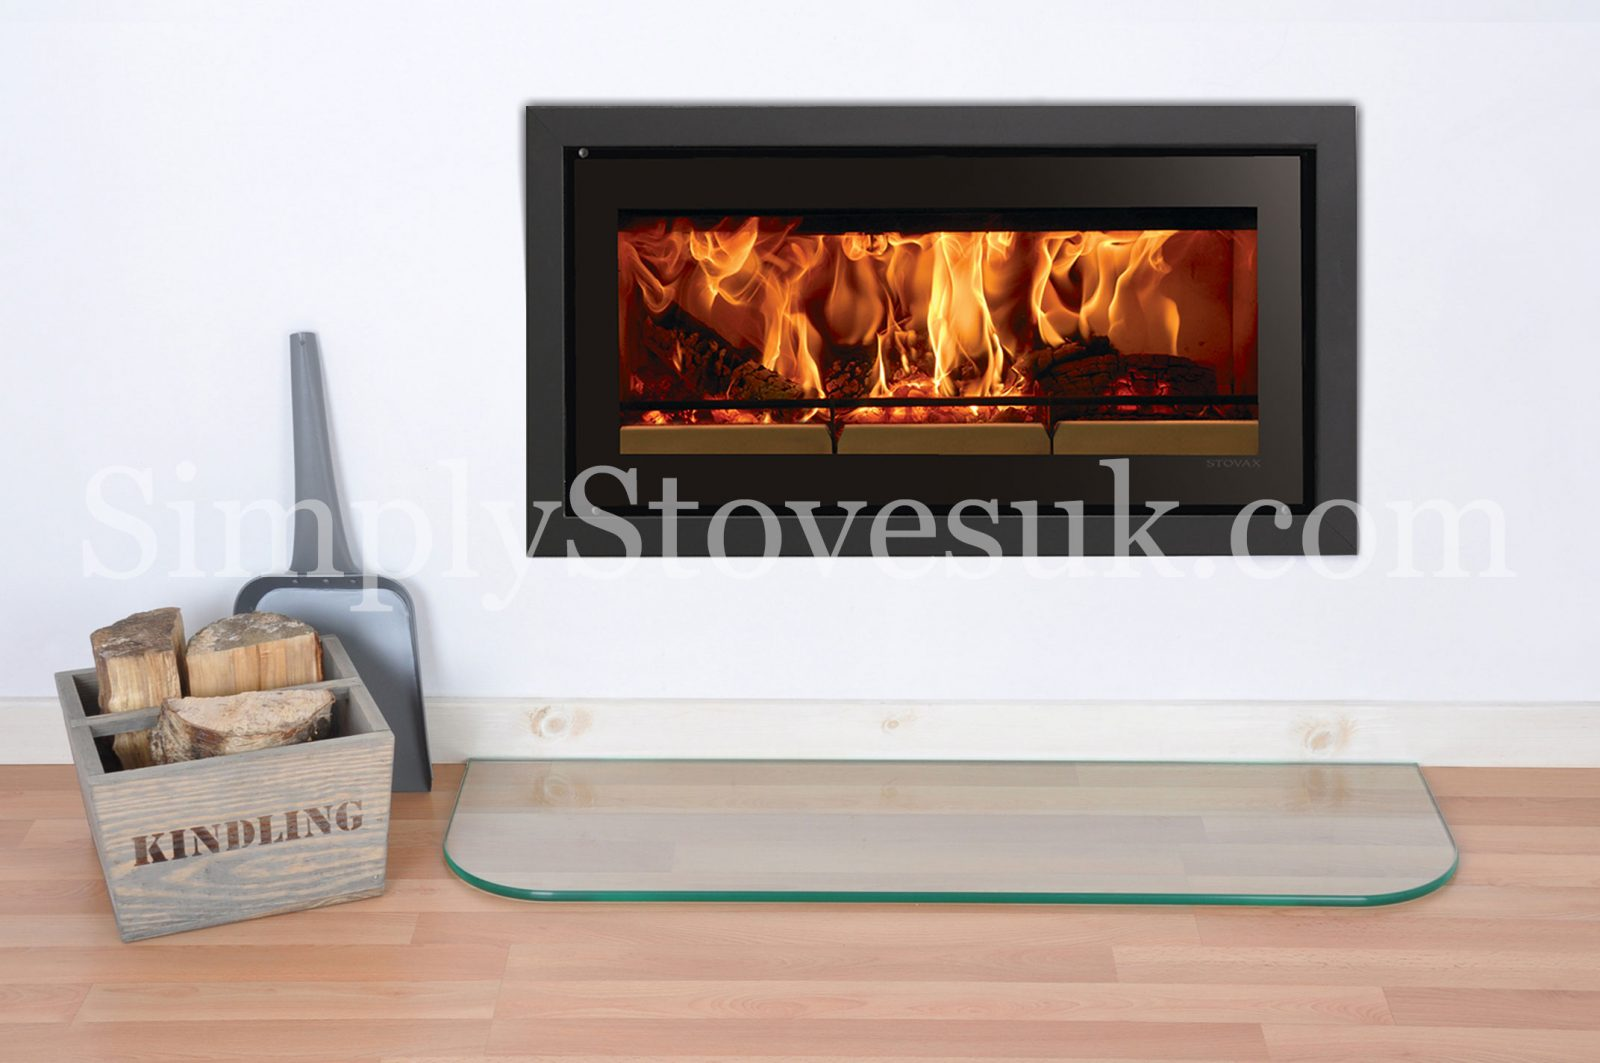 Inset Stove Glass Hearth Floor Plate With Curved Front Edges